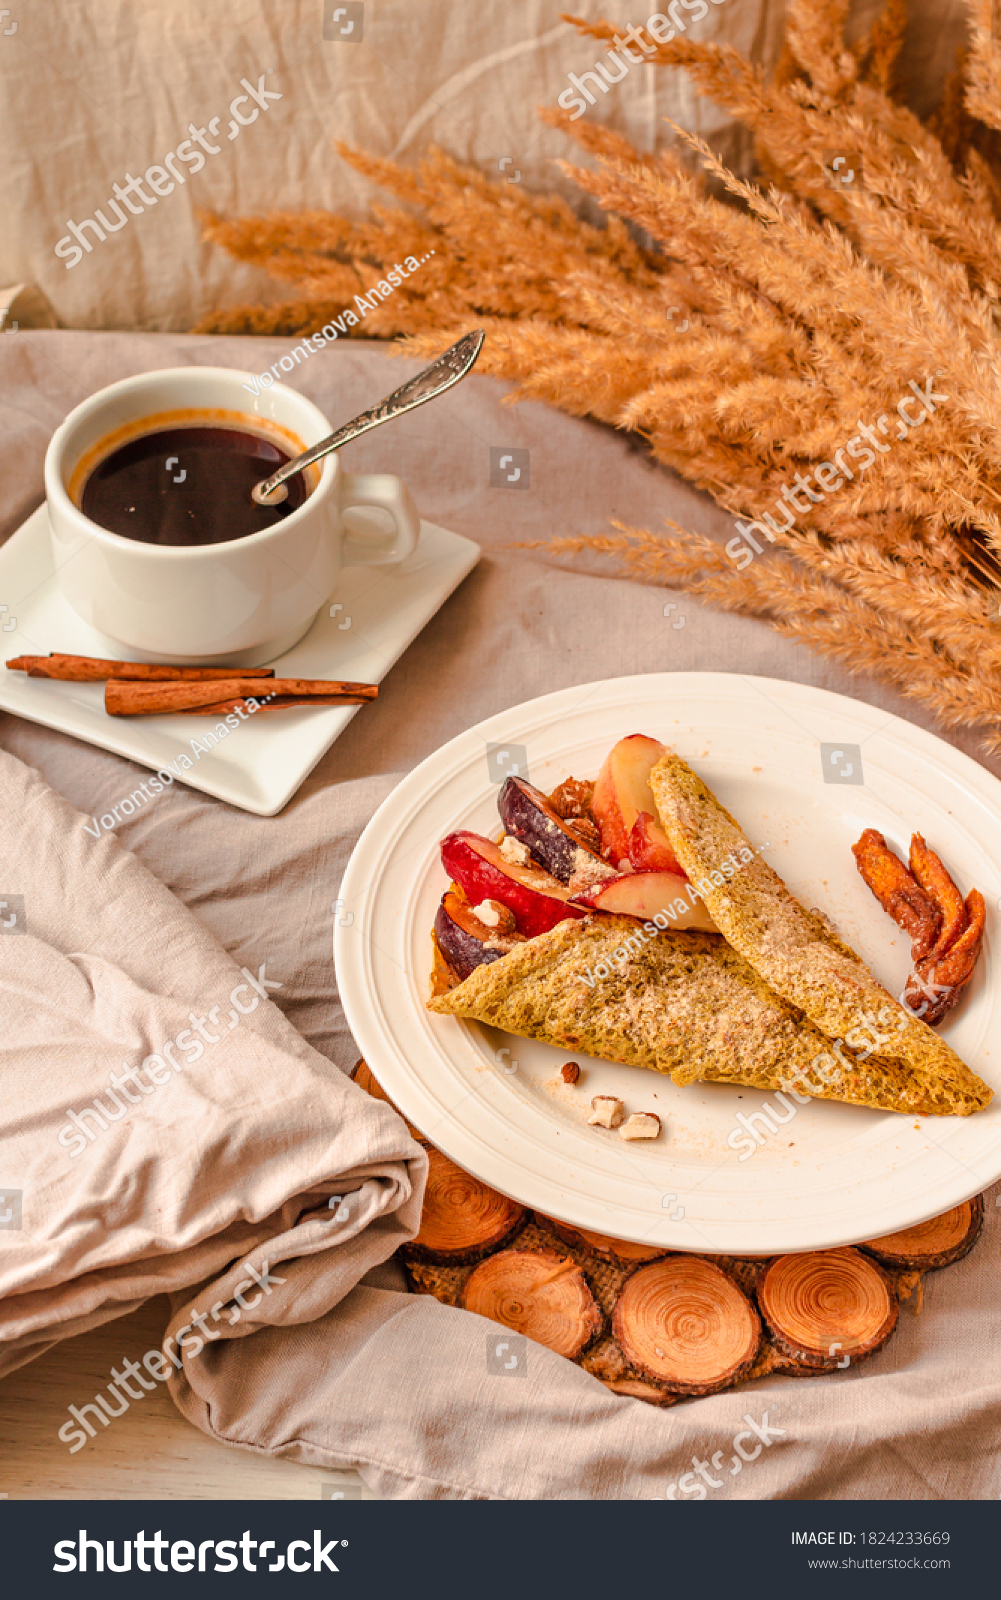 gluten-free keto crepes with peach and almonds and sweet berries. a cup of coffee with cinnamon. selective focus. autumn healthy breakfast or dessert concept. #1824233669